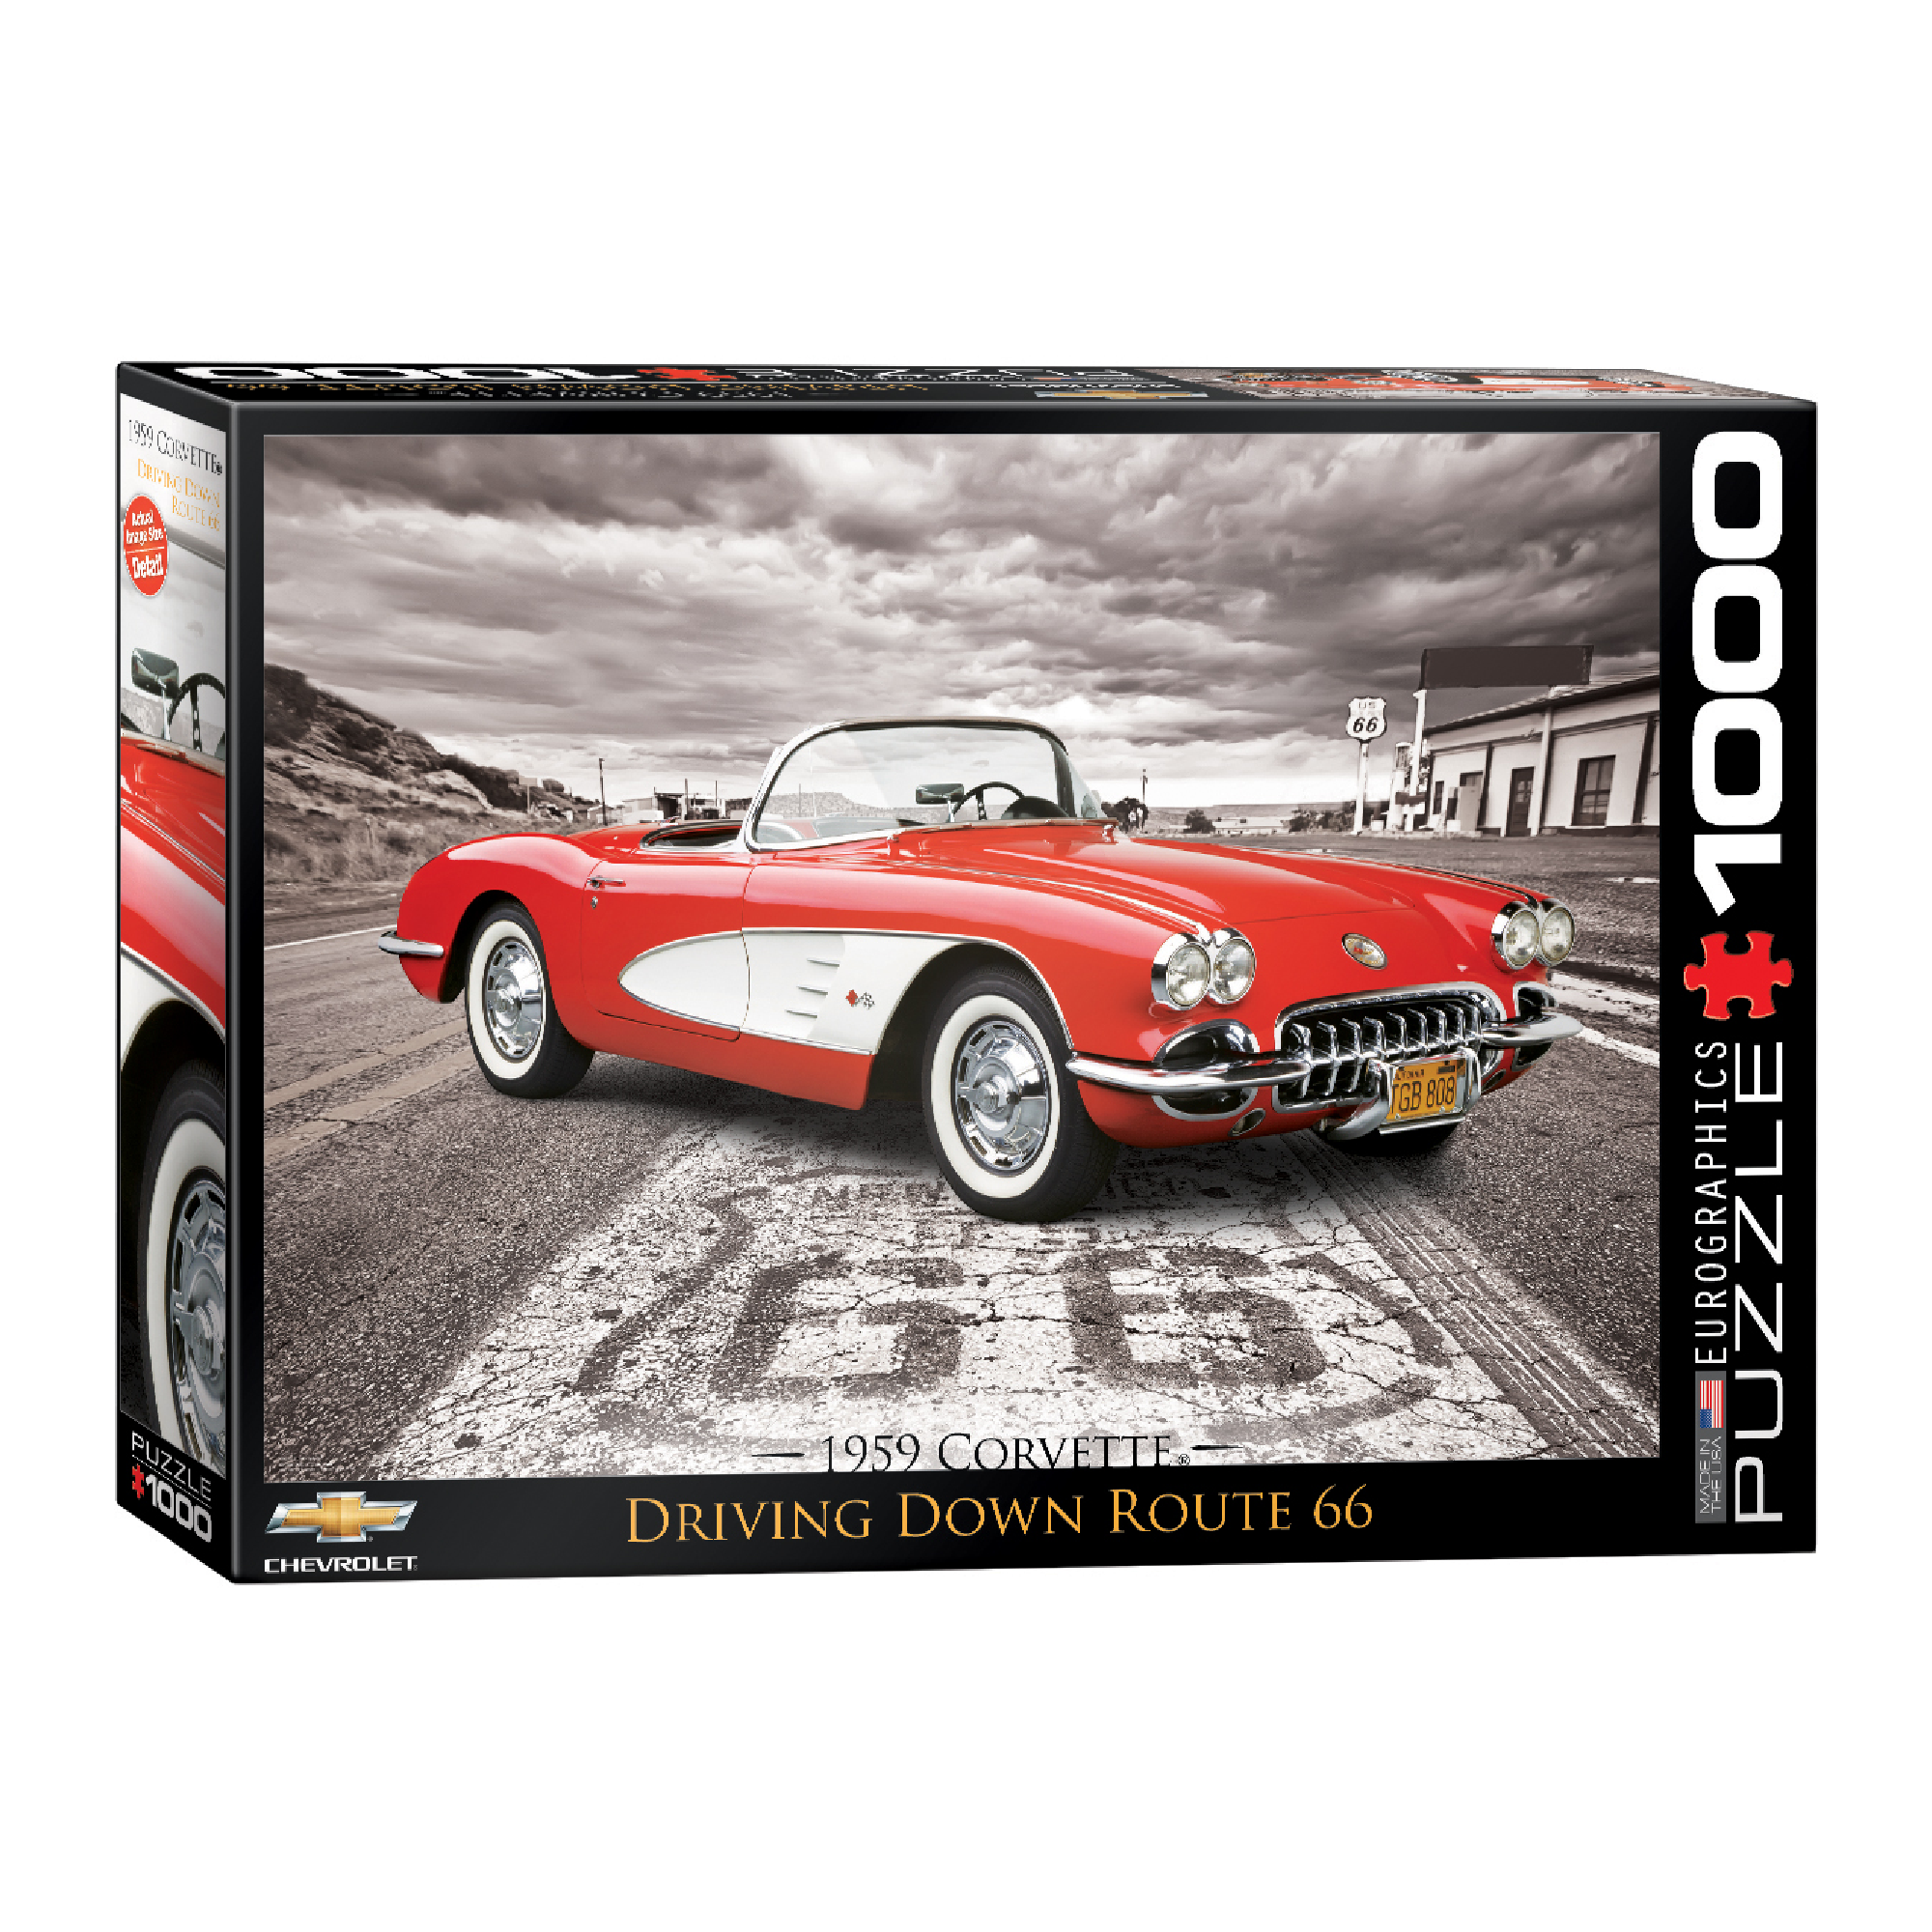 Eurographics Puzzle 1000: Driving Down Route 66 -1959 Corvette